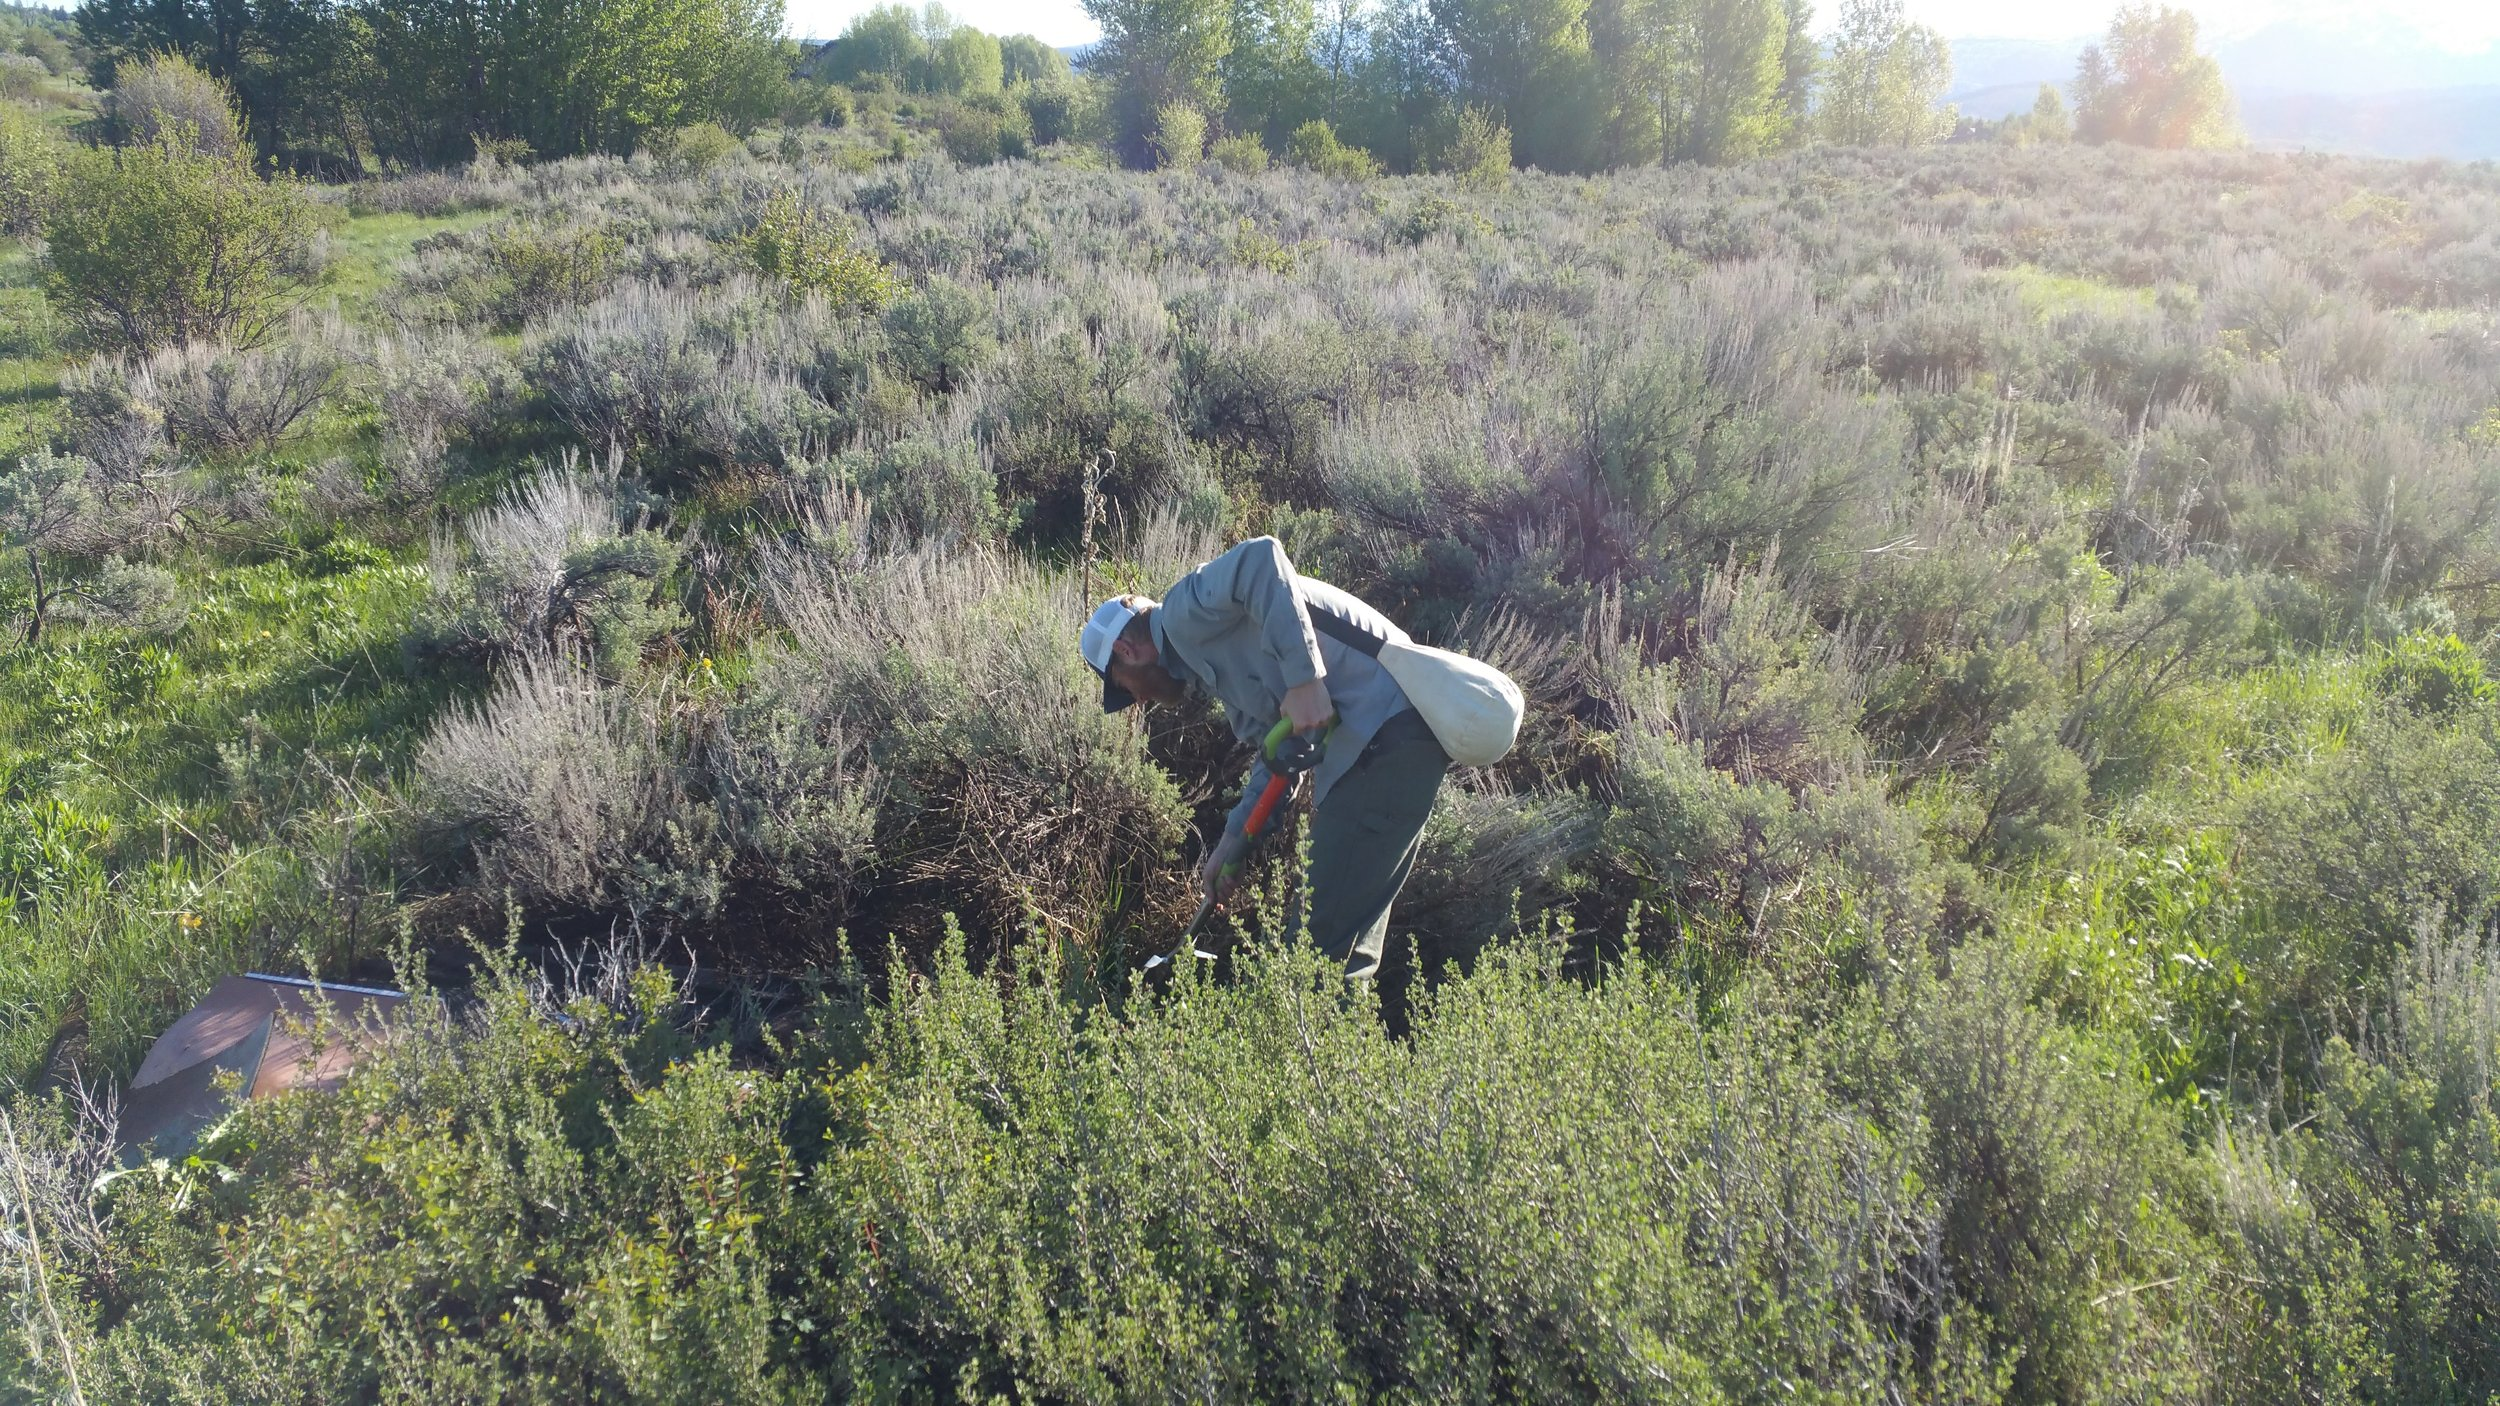 weed control service - weed removal in field